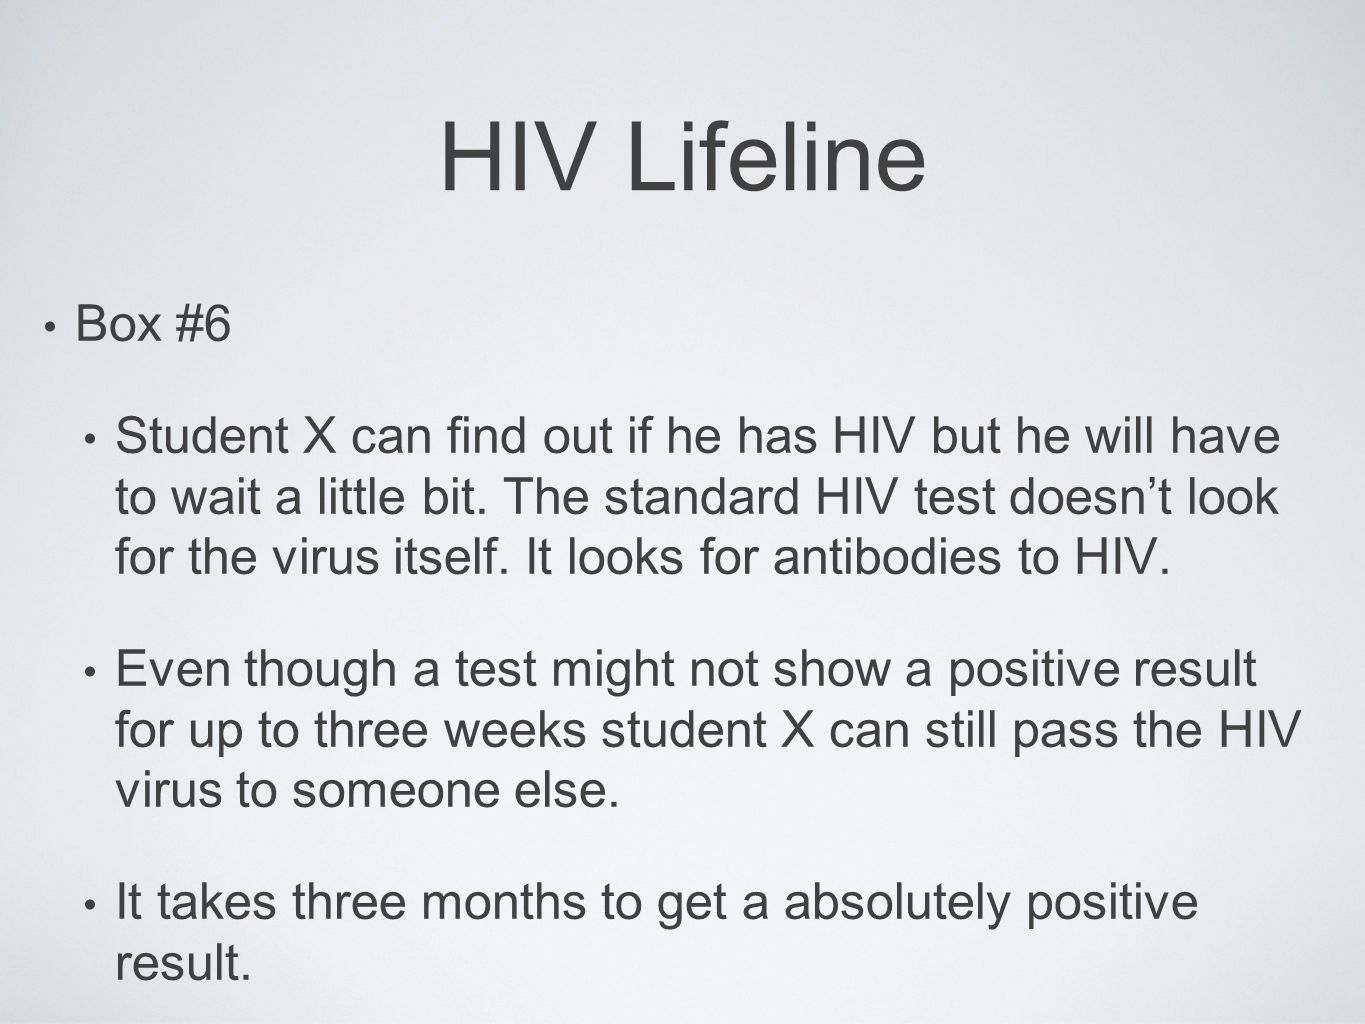 HIV Lifeline Box #6.